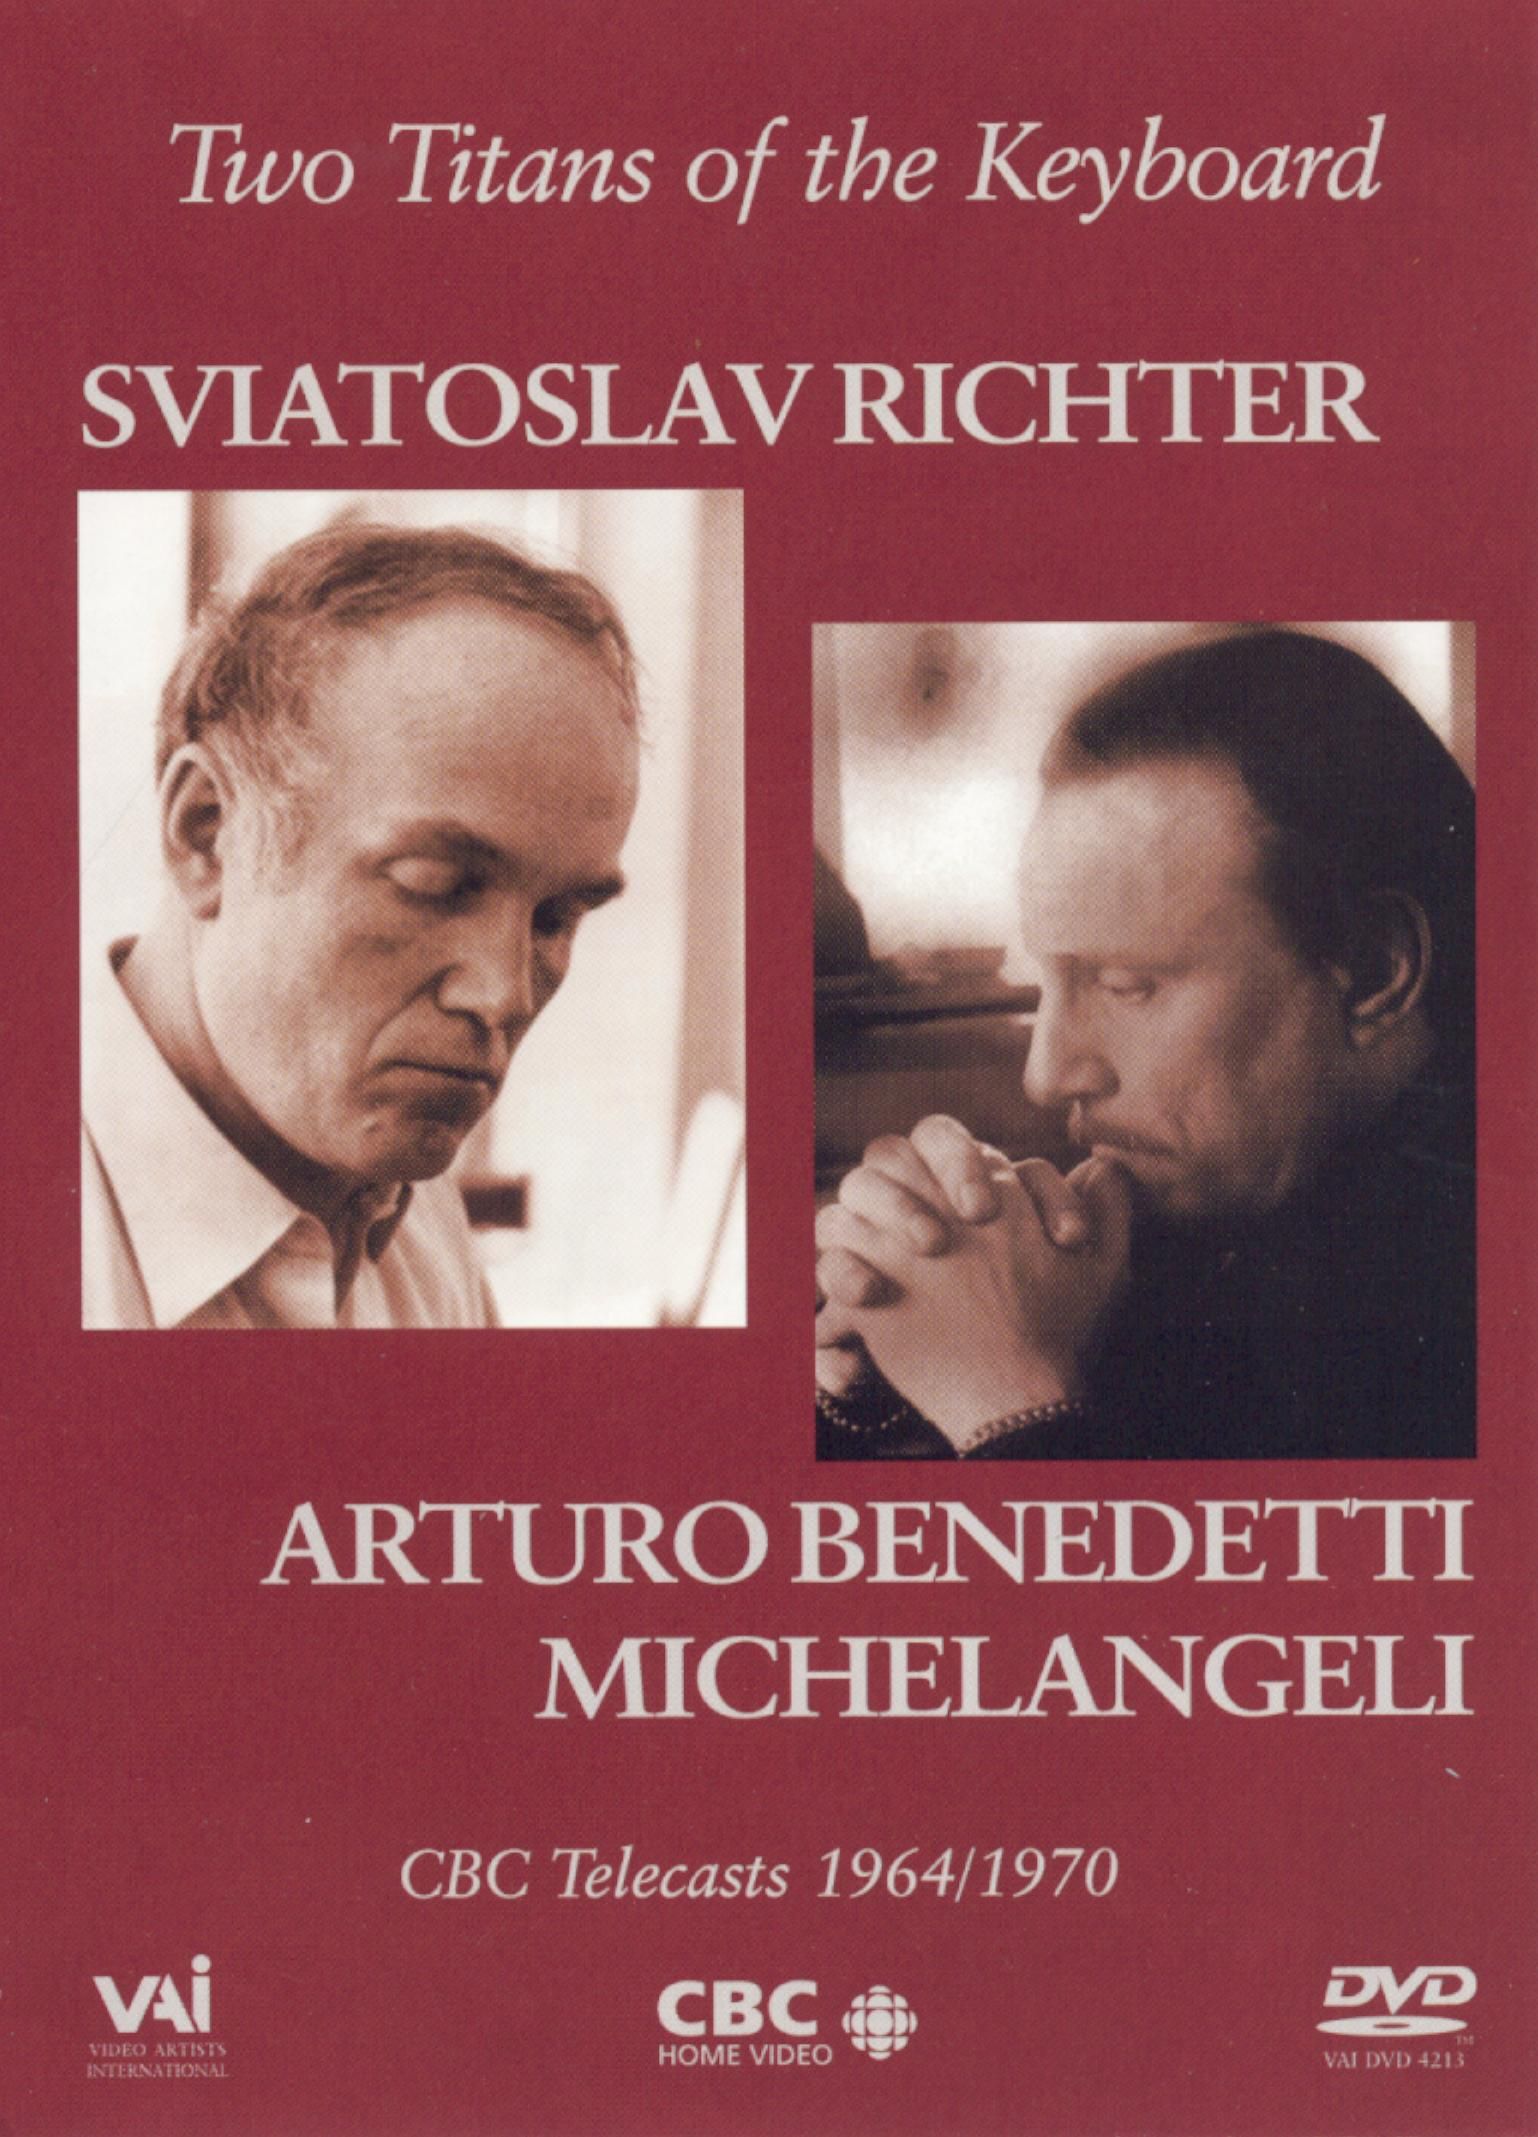 Two Titans of the Keyboard: Sviatoslav Richter and Arturo Benedetti Michelangeli